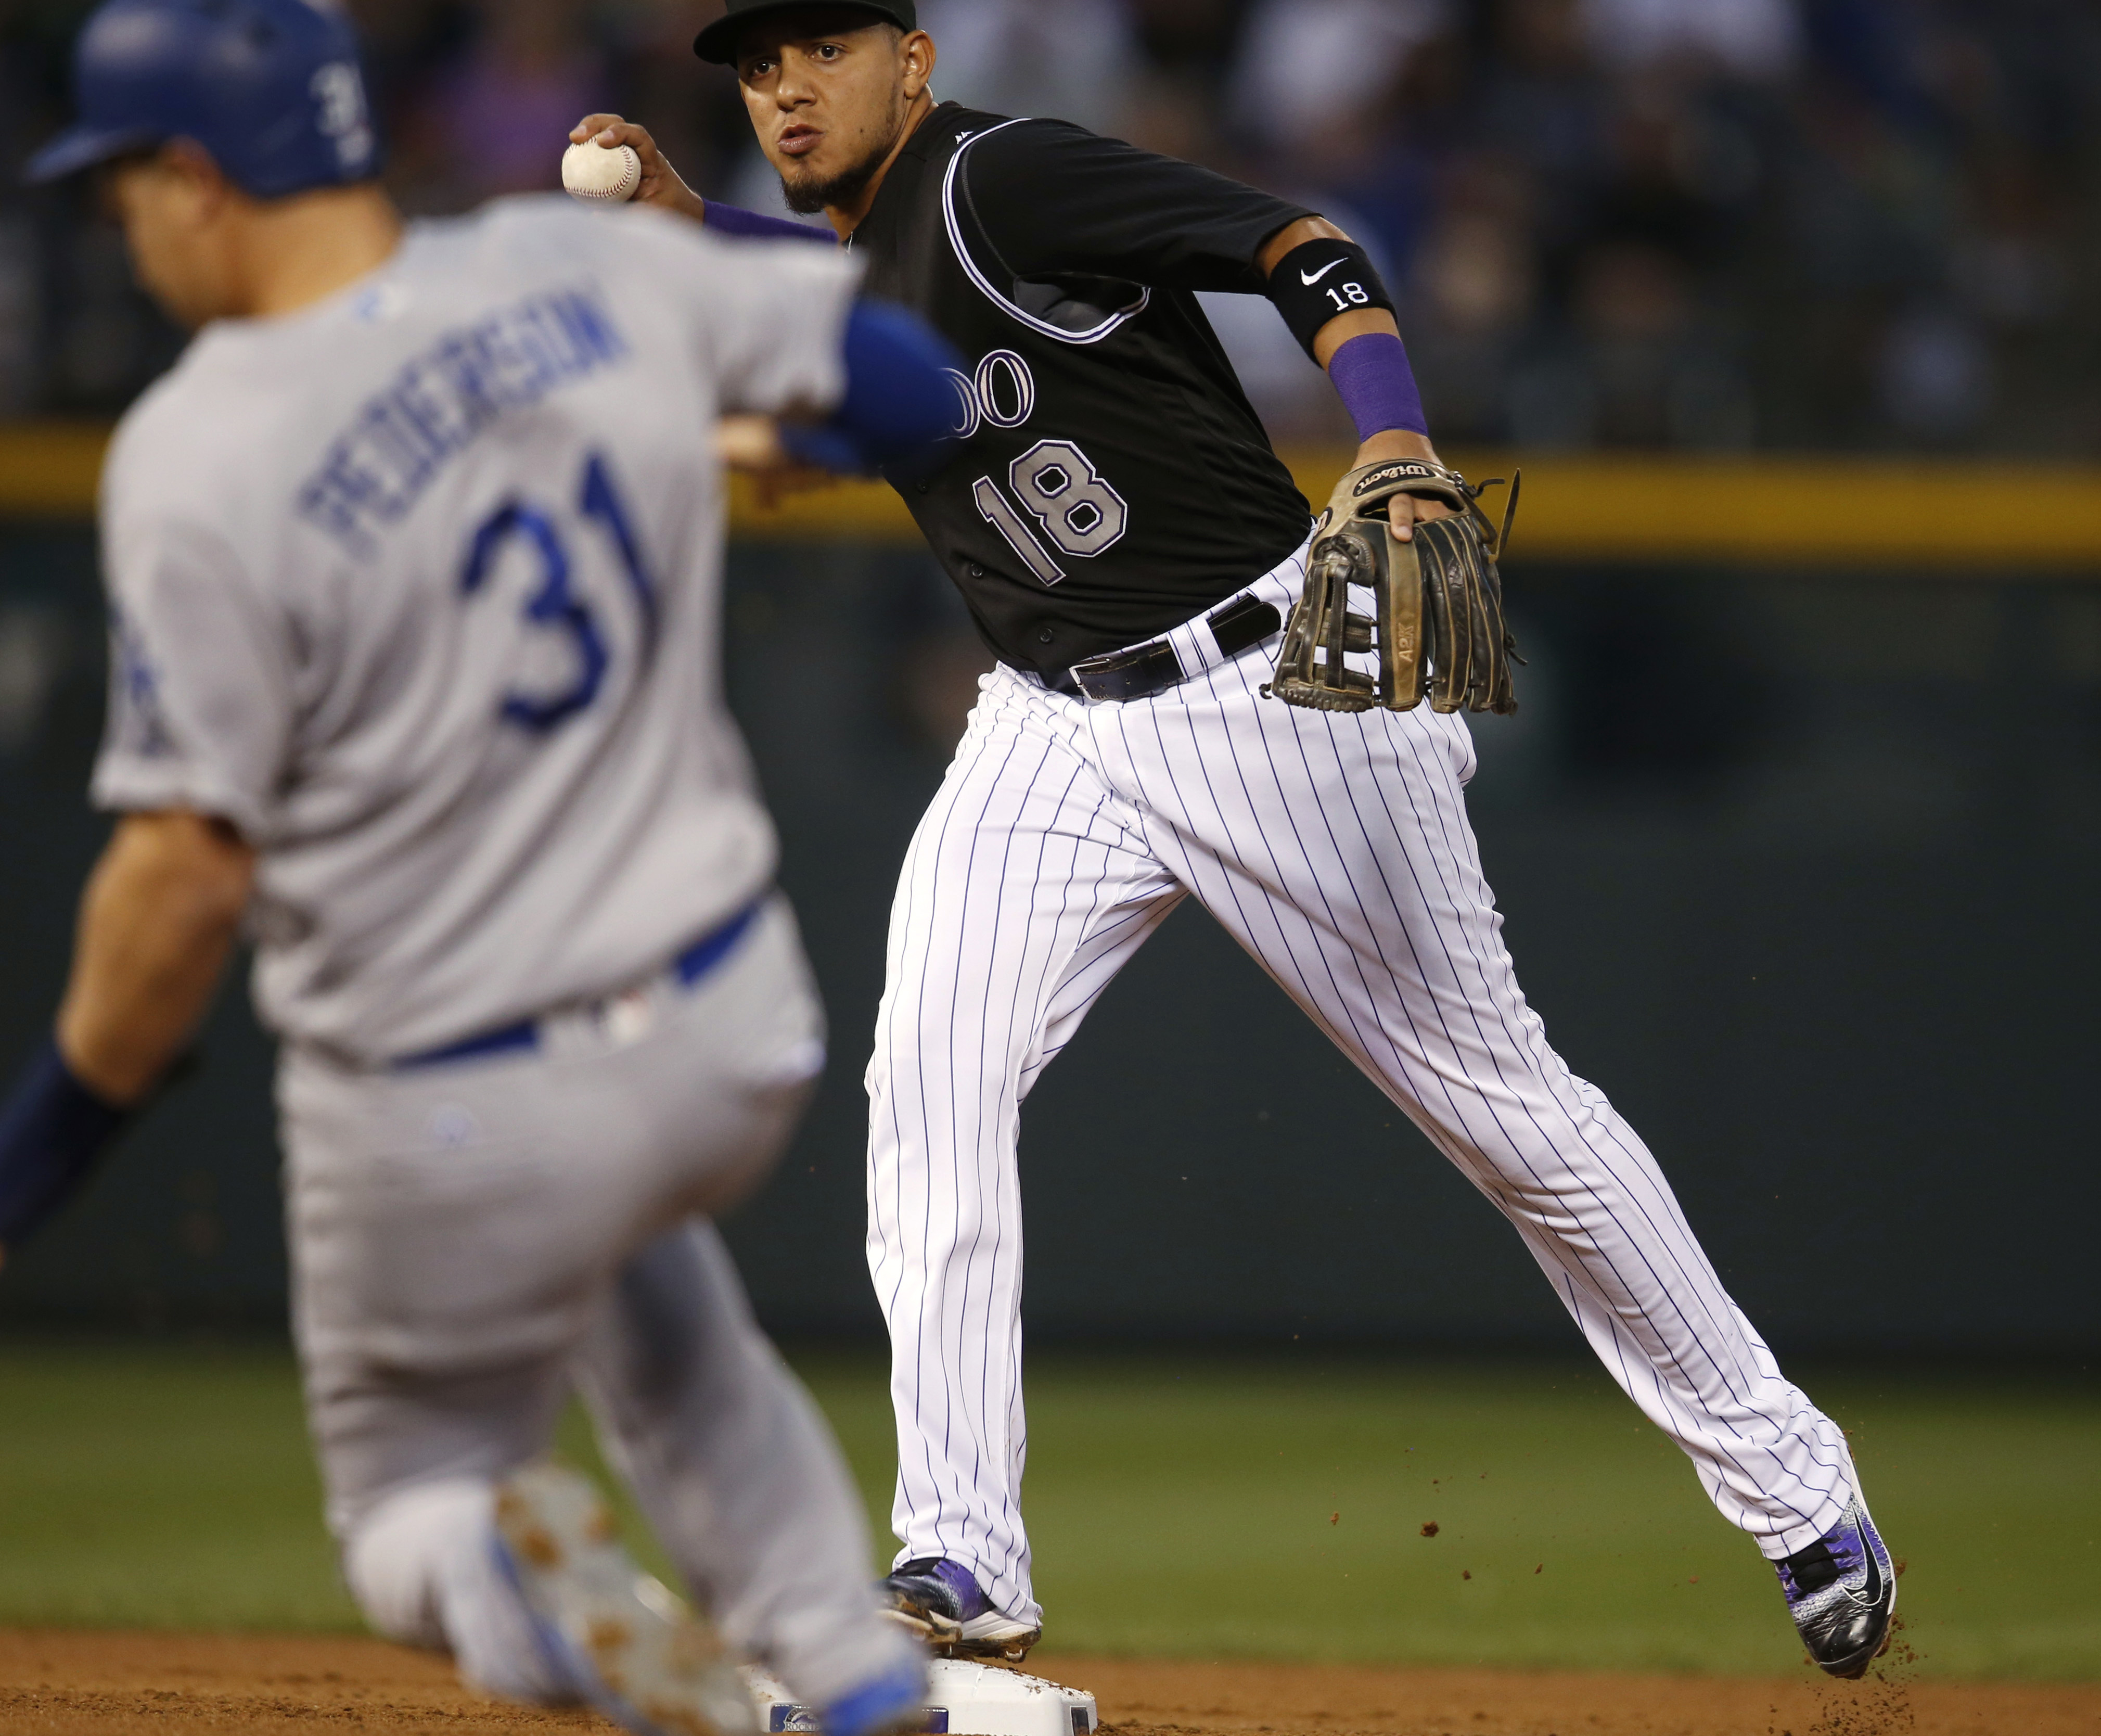 Colorado Rockies second baseman Cristhian Adames, back, forces out Los Angeles Dodgers' Joc Pederson at second base on the front end of a double play hit into by Kenta Maeda to end the top of the fourth inning of a baseball game Thursday, Aug. 4, 2016 in